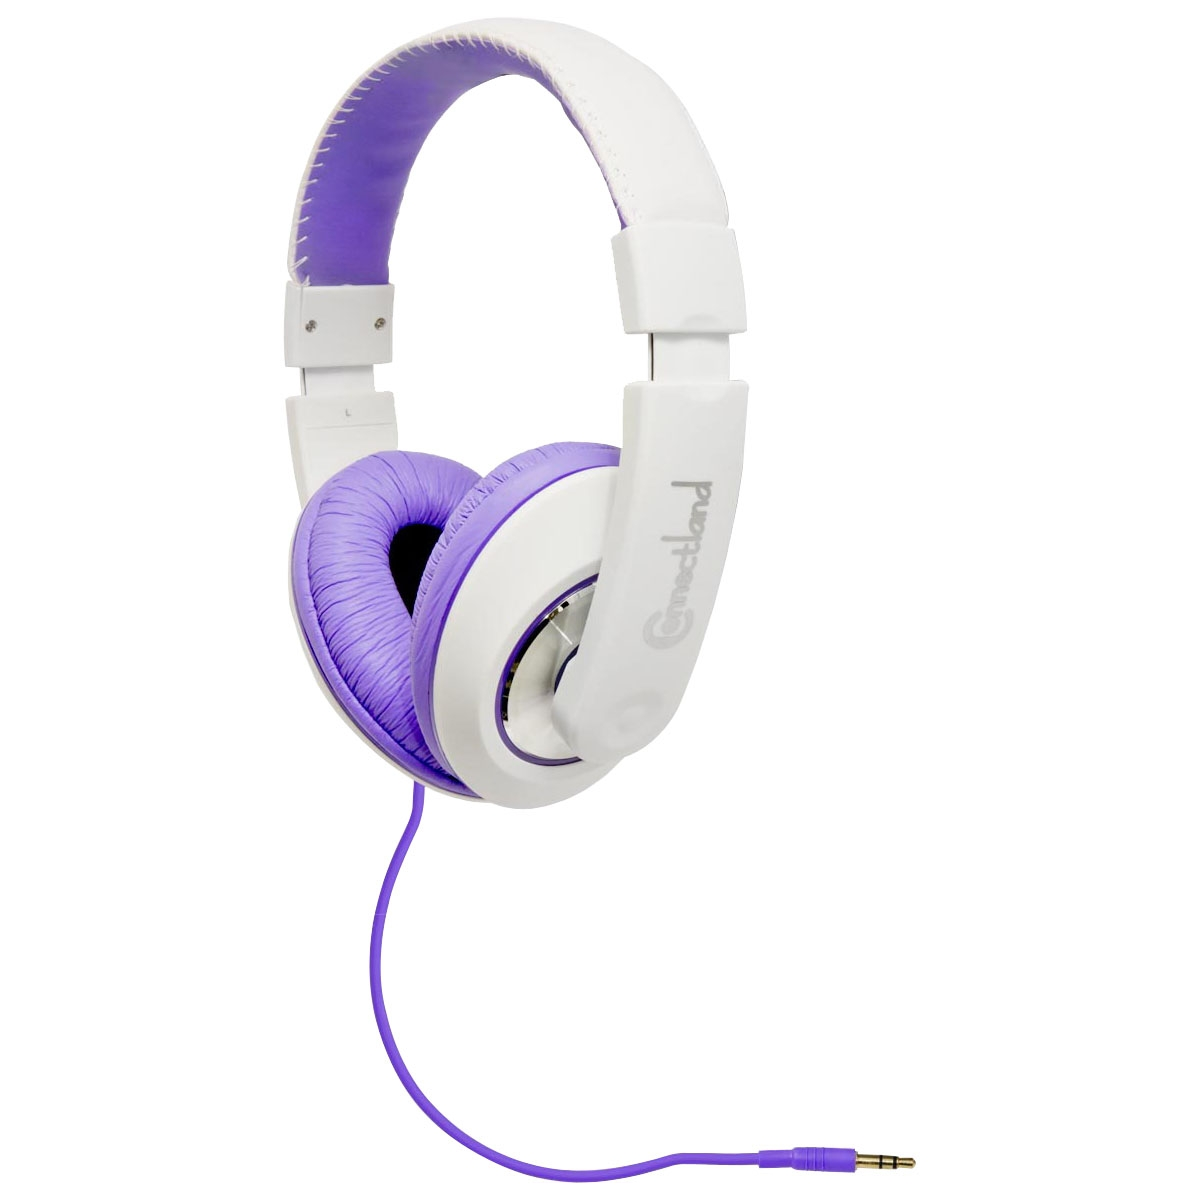 Multimedia Headset - Stereo - White Purple - Mini-phone - Wired - 32 Ohm - 20 Hz - 20 kHz - Over-the-head - Binaural - Ear-cup - 4.83 ft Cable